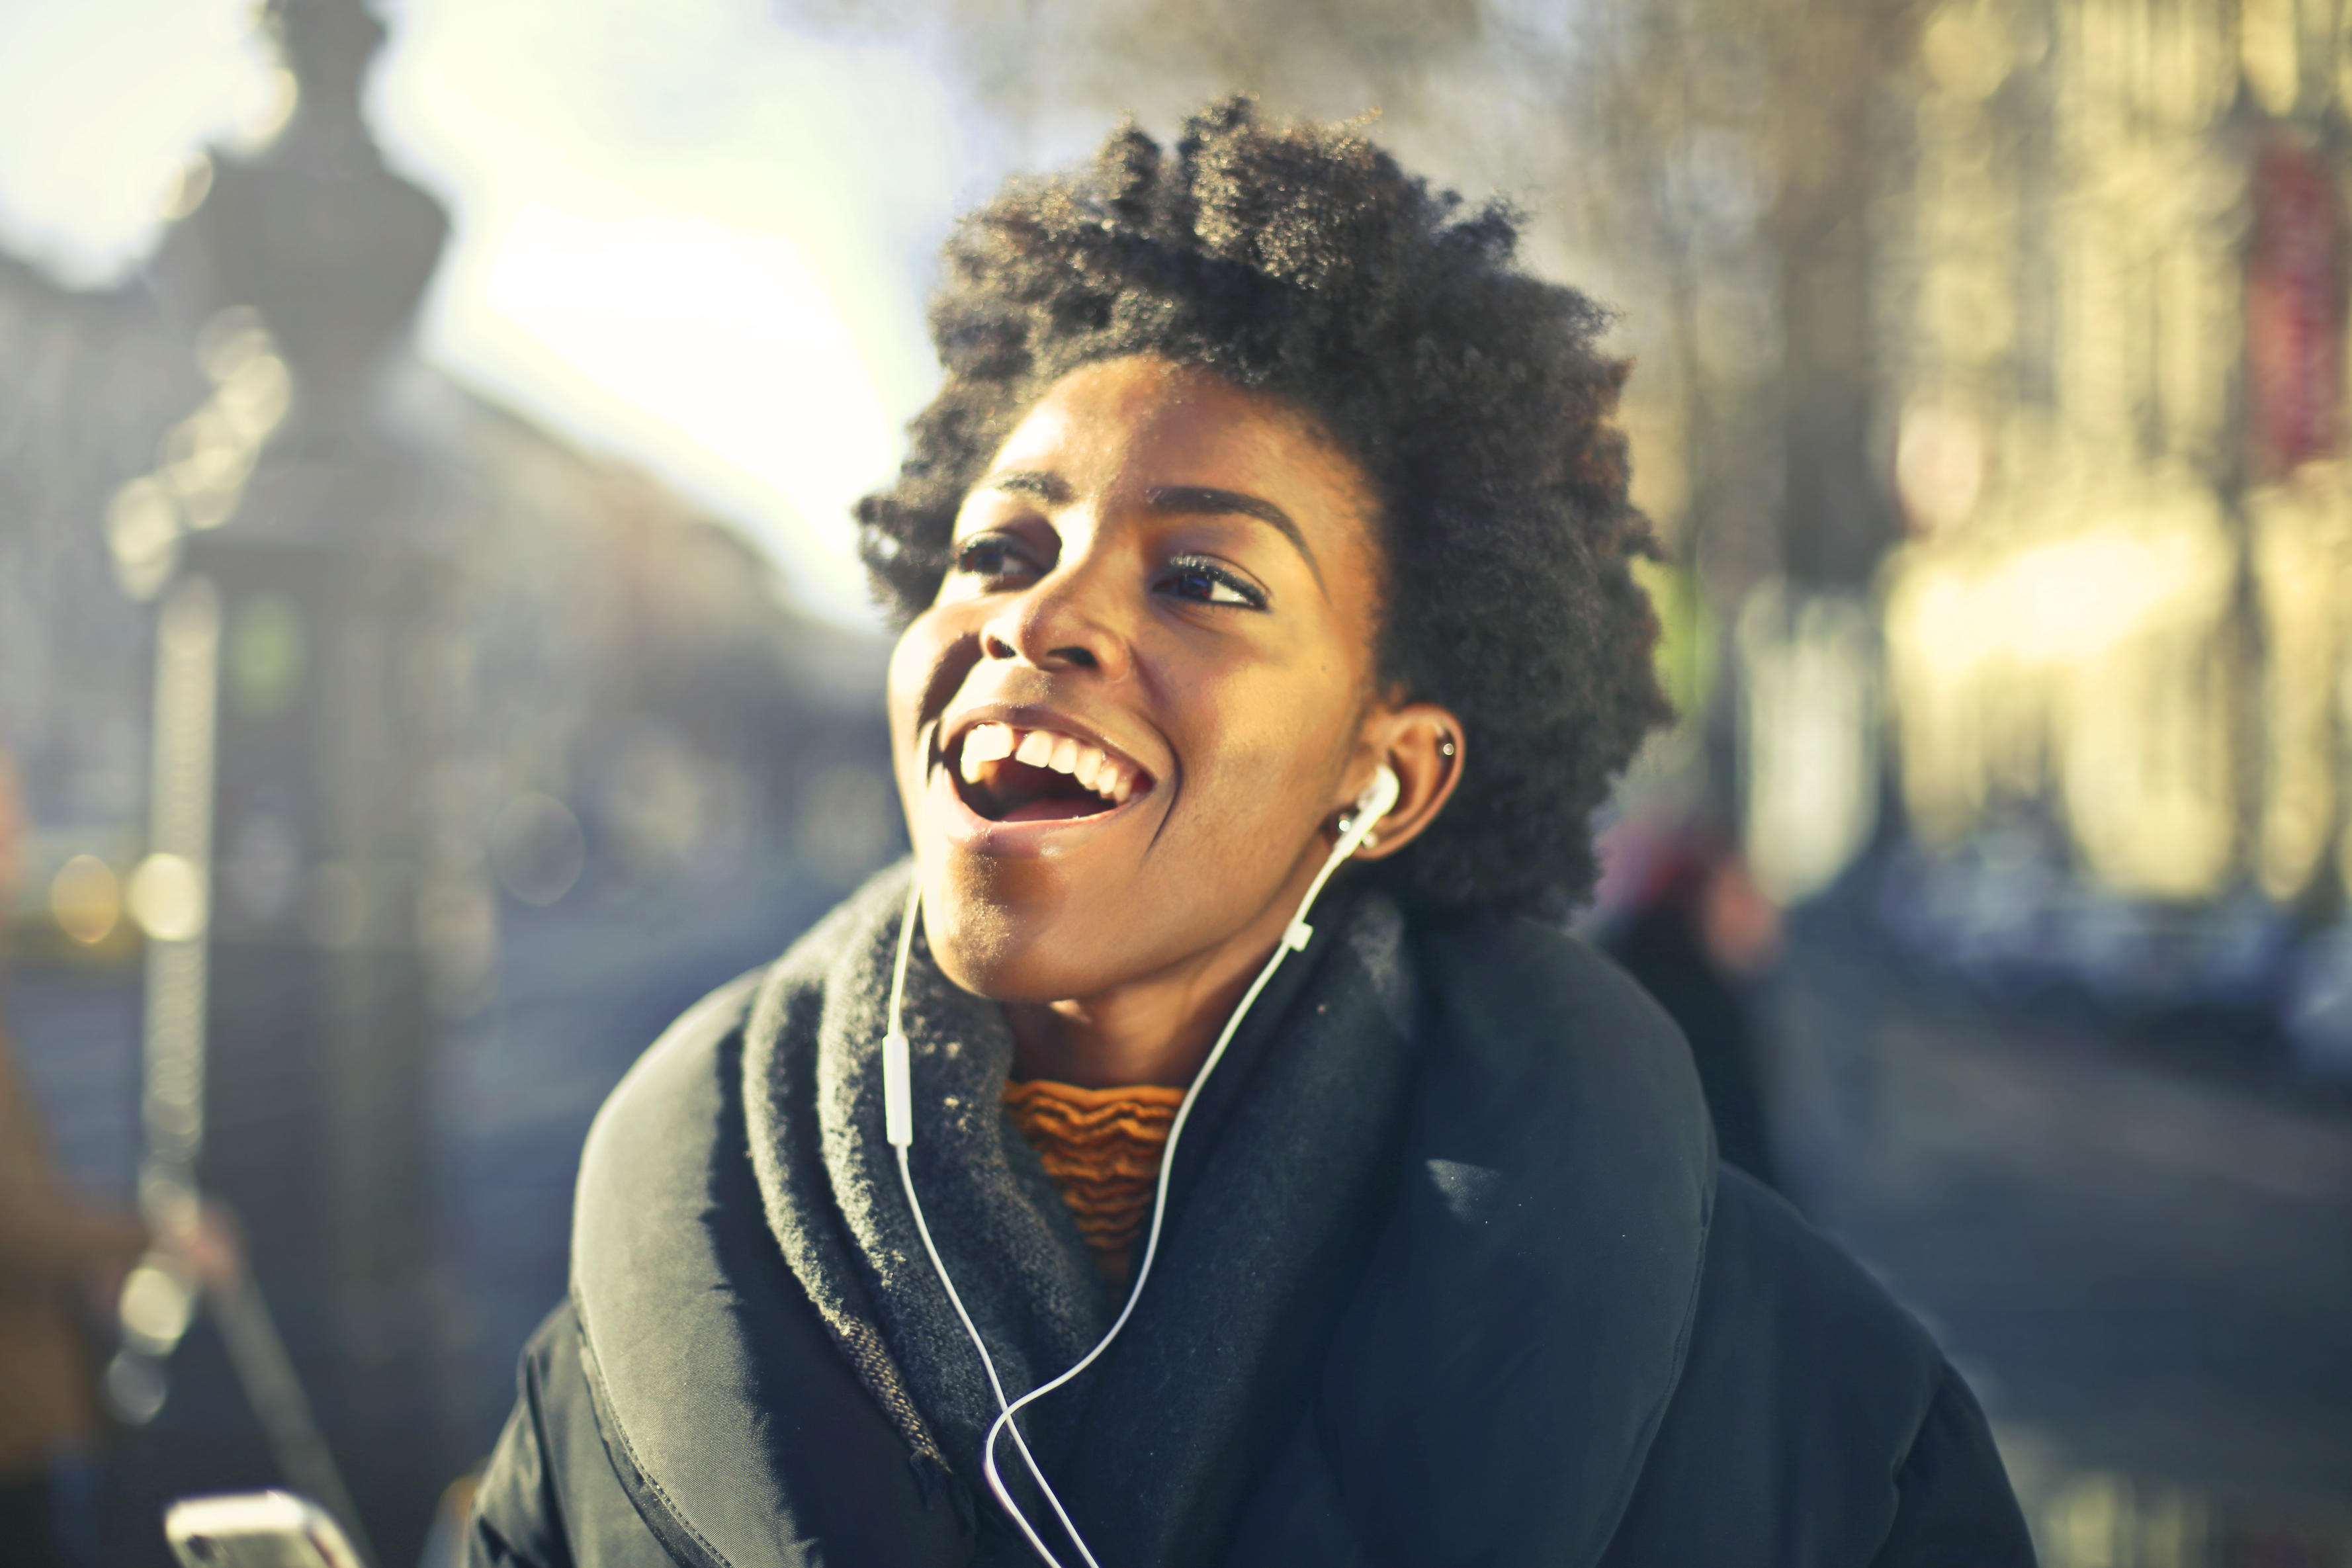 Close Up Photo Of A Woman Listening To Music Free Stock